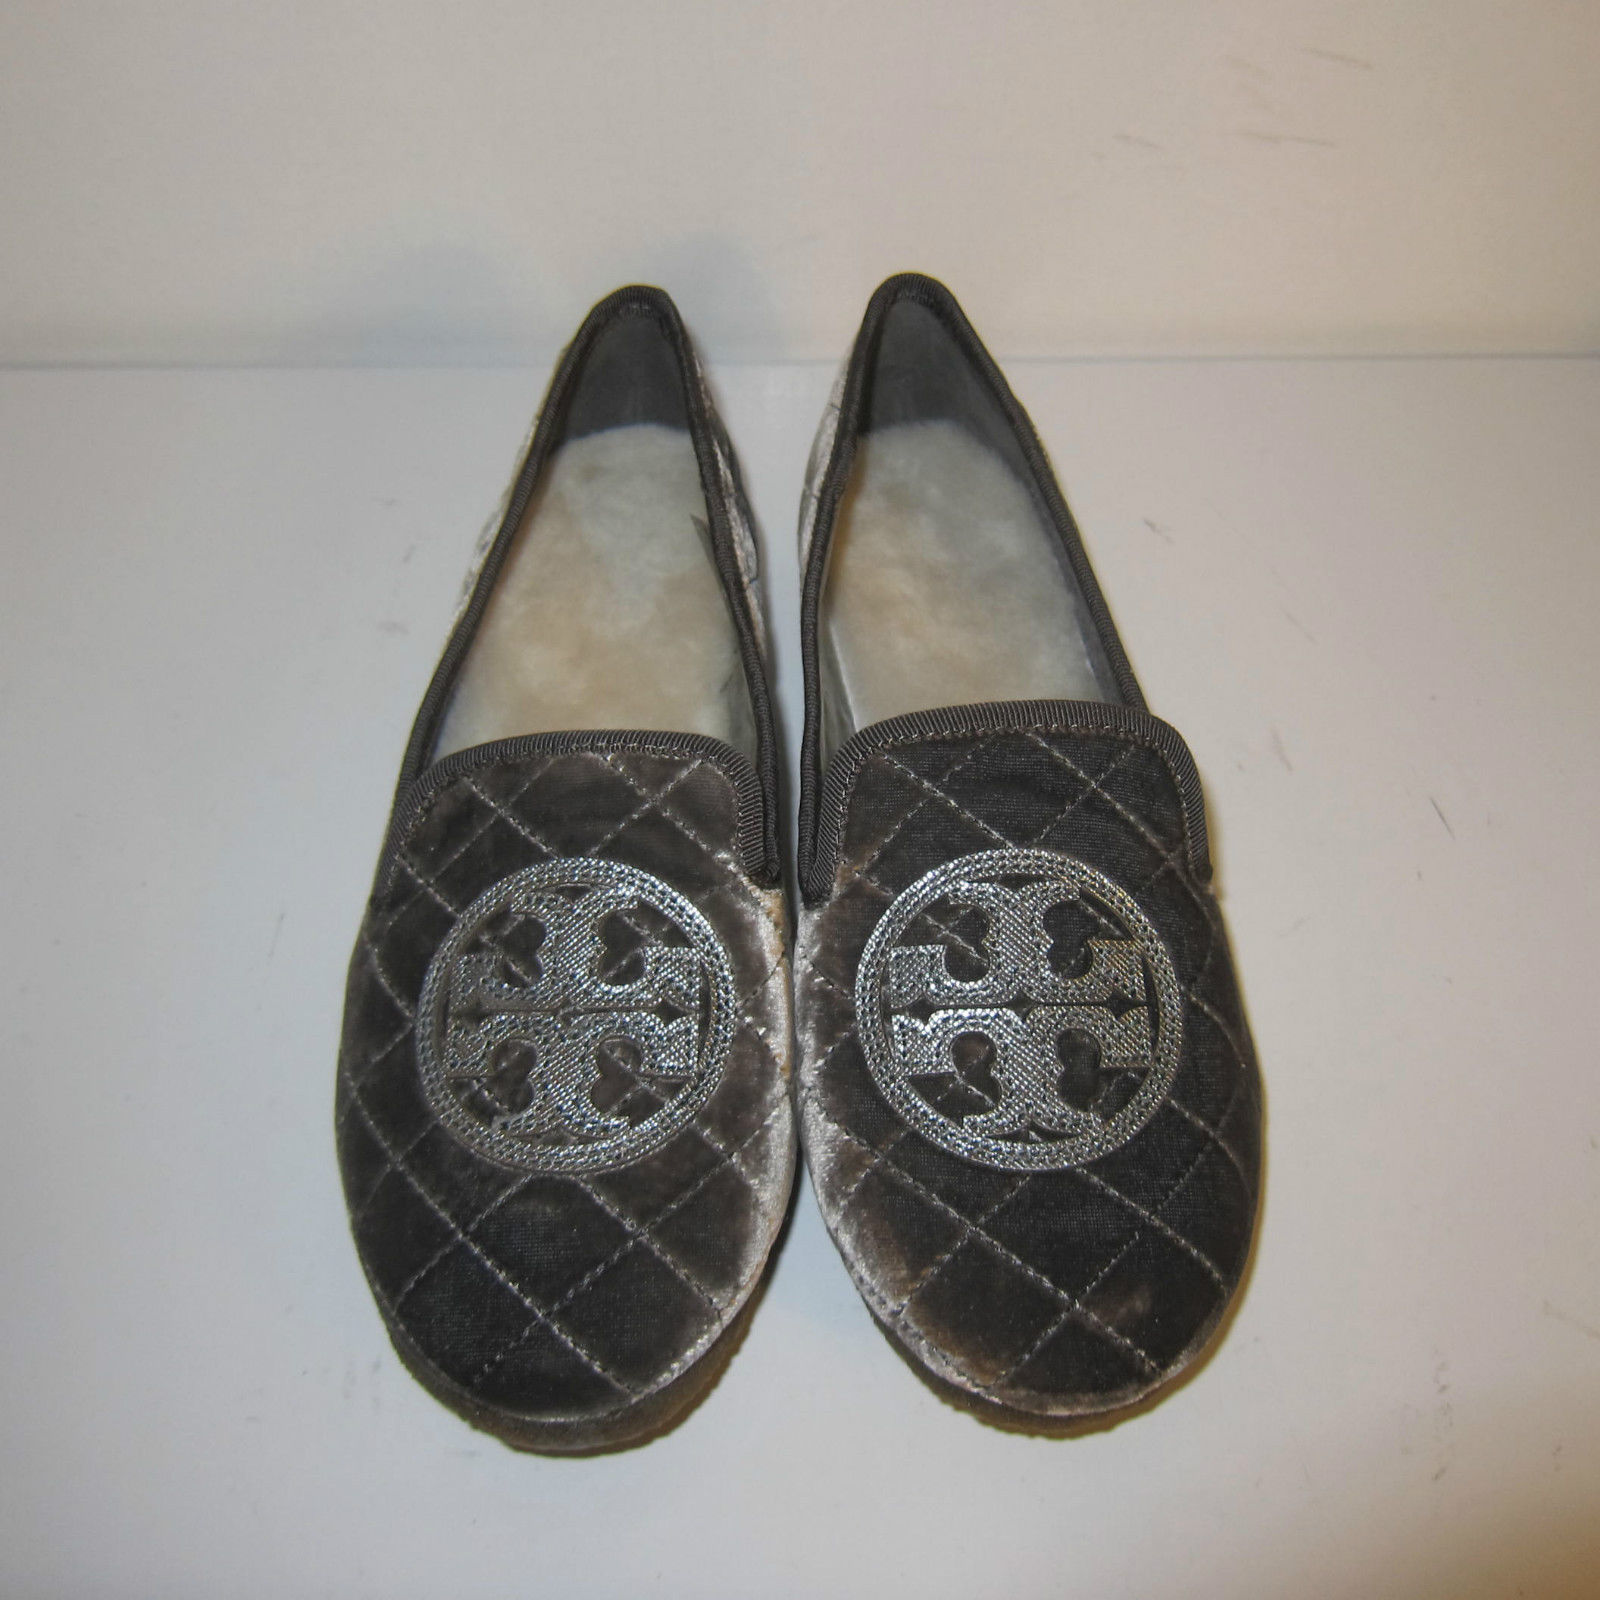 0d4bf8711ab C-1242970 New Tory Burch Gray Pewter Quilted Billy Slippers Shoes Size US 6